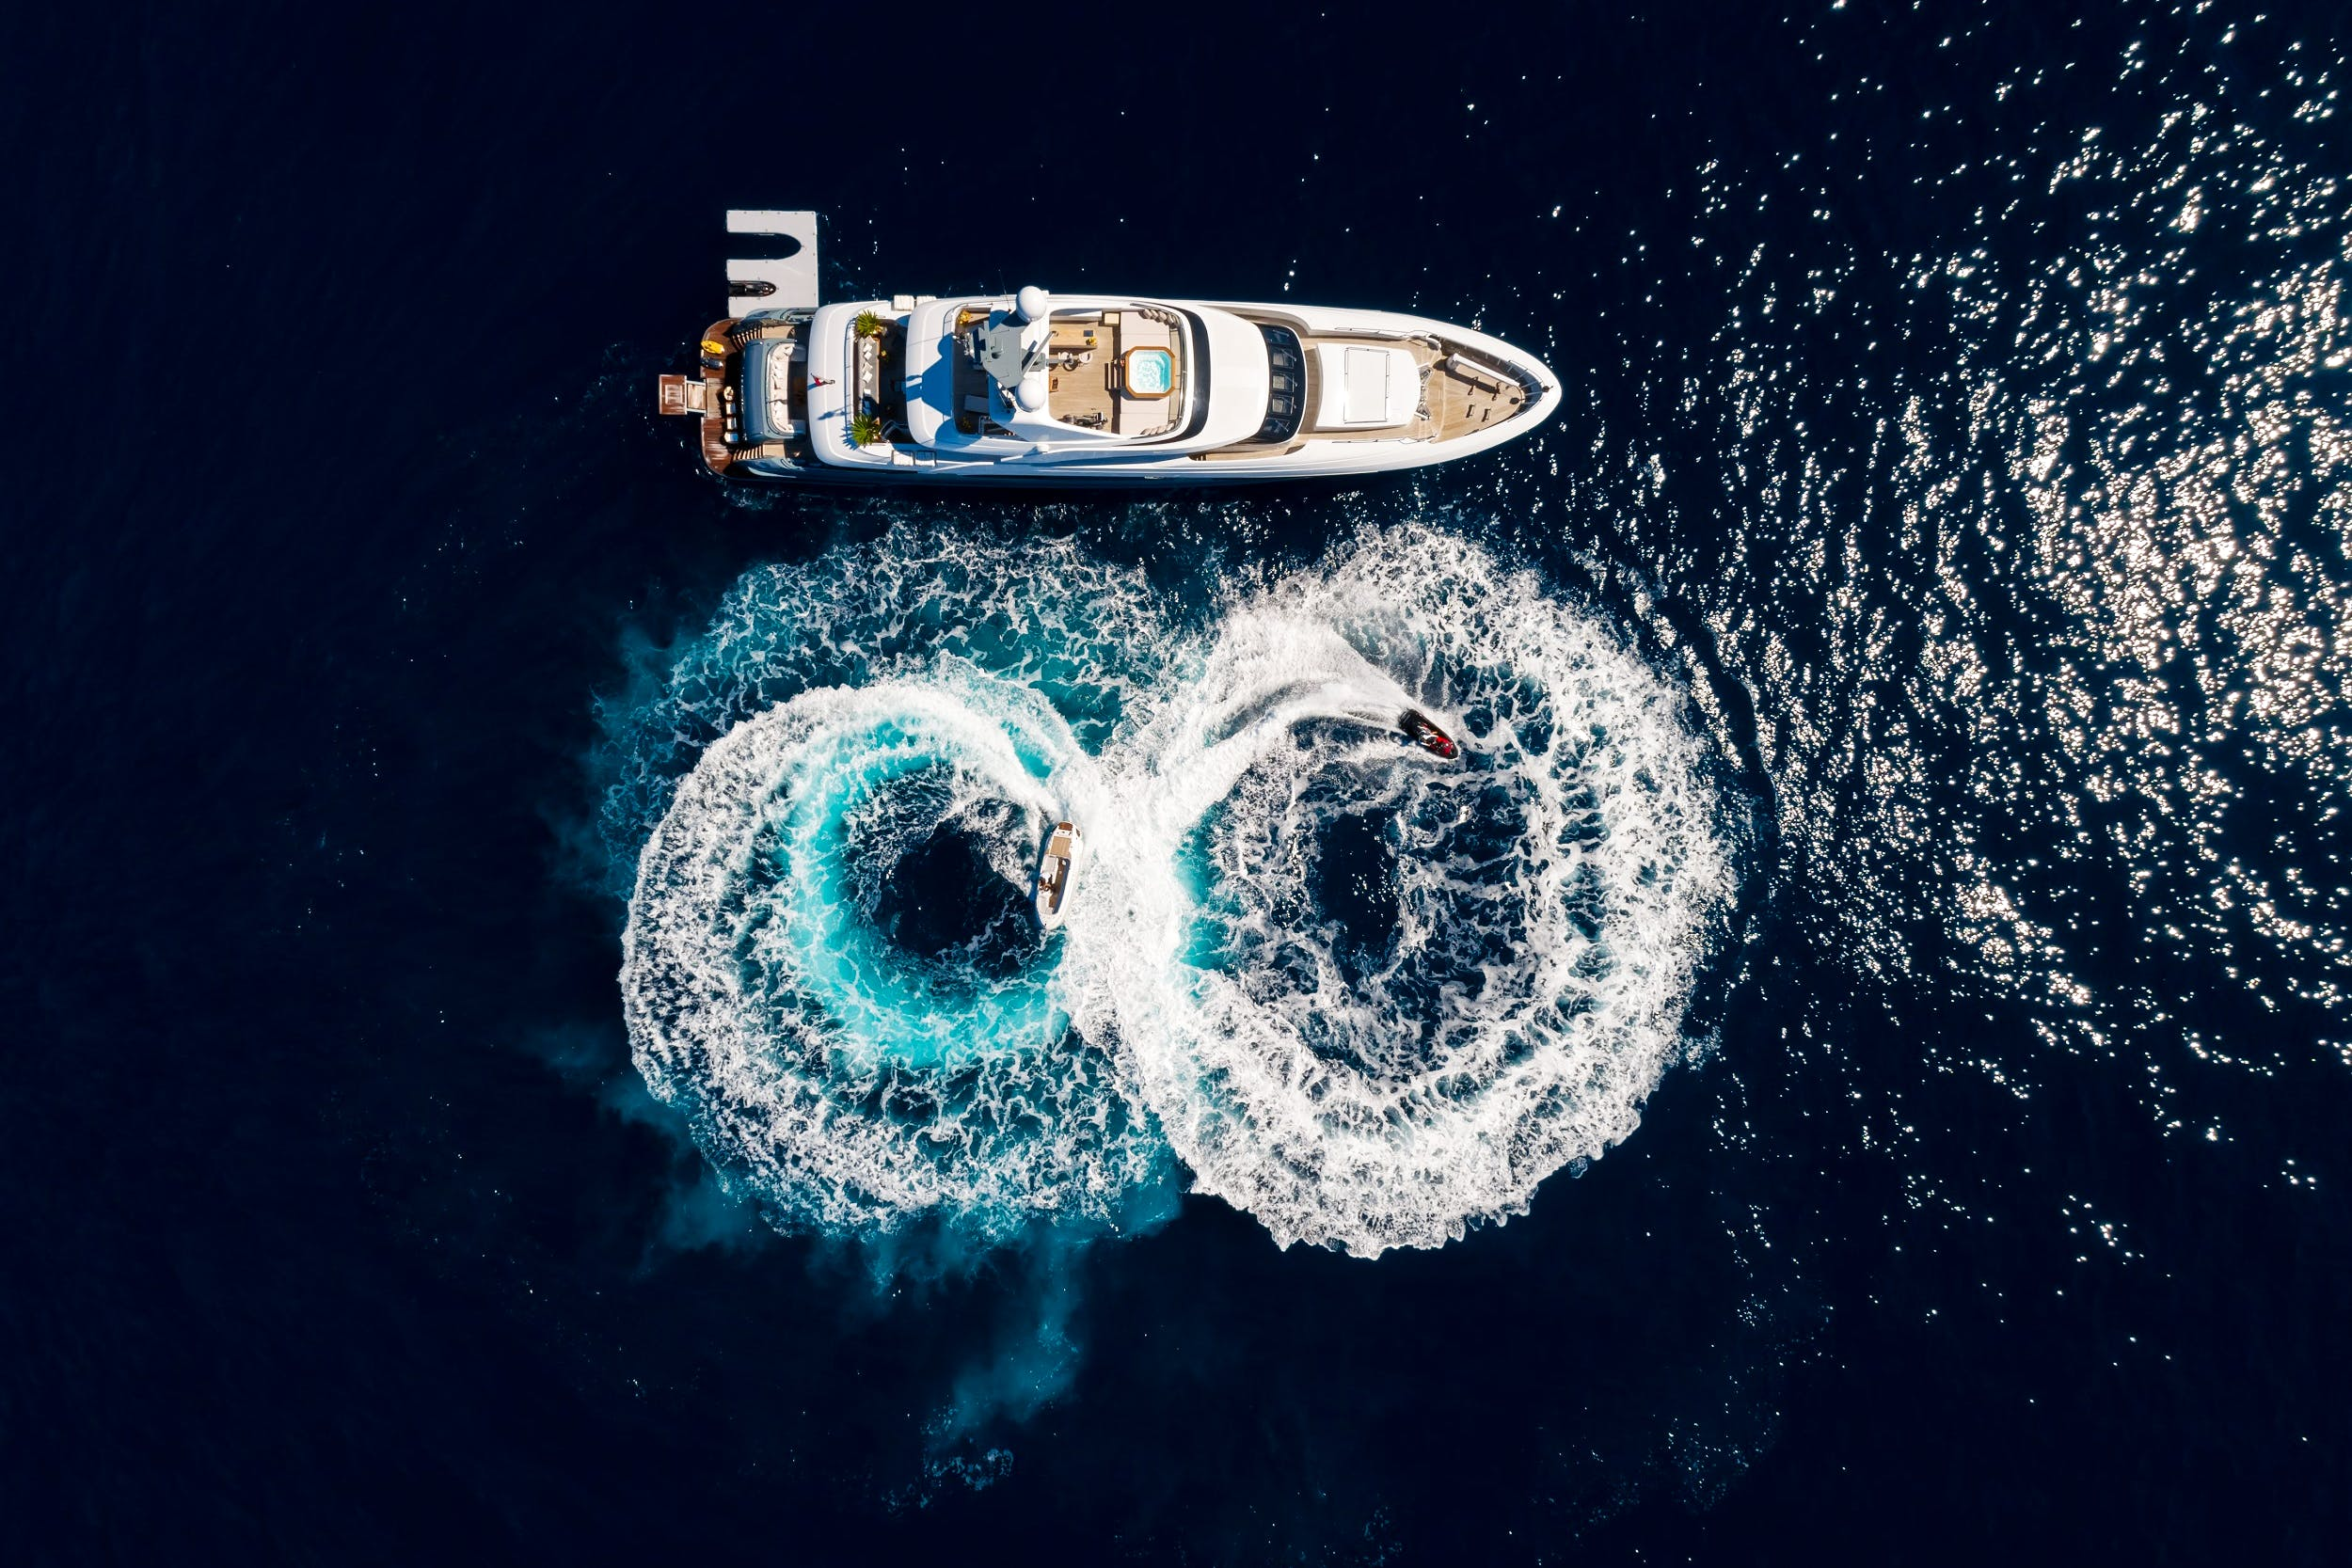 A charter journey on board LEGENDA